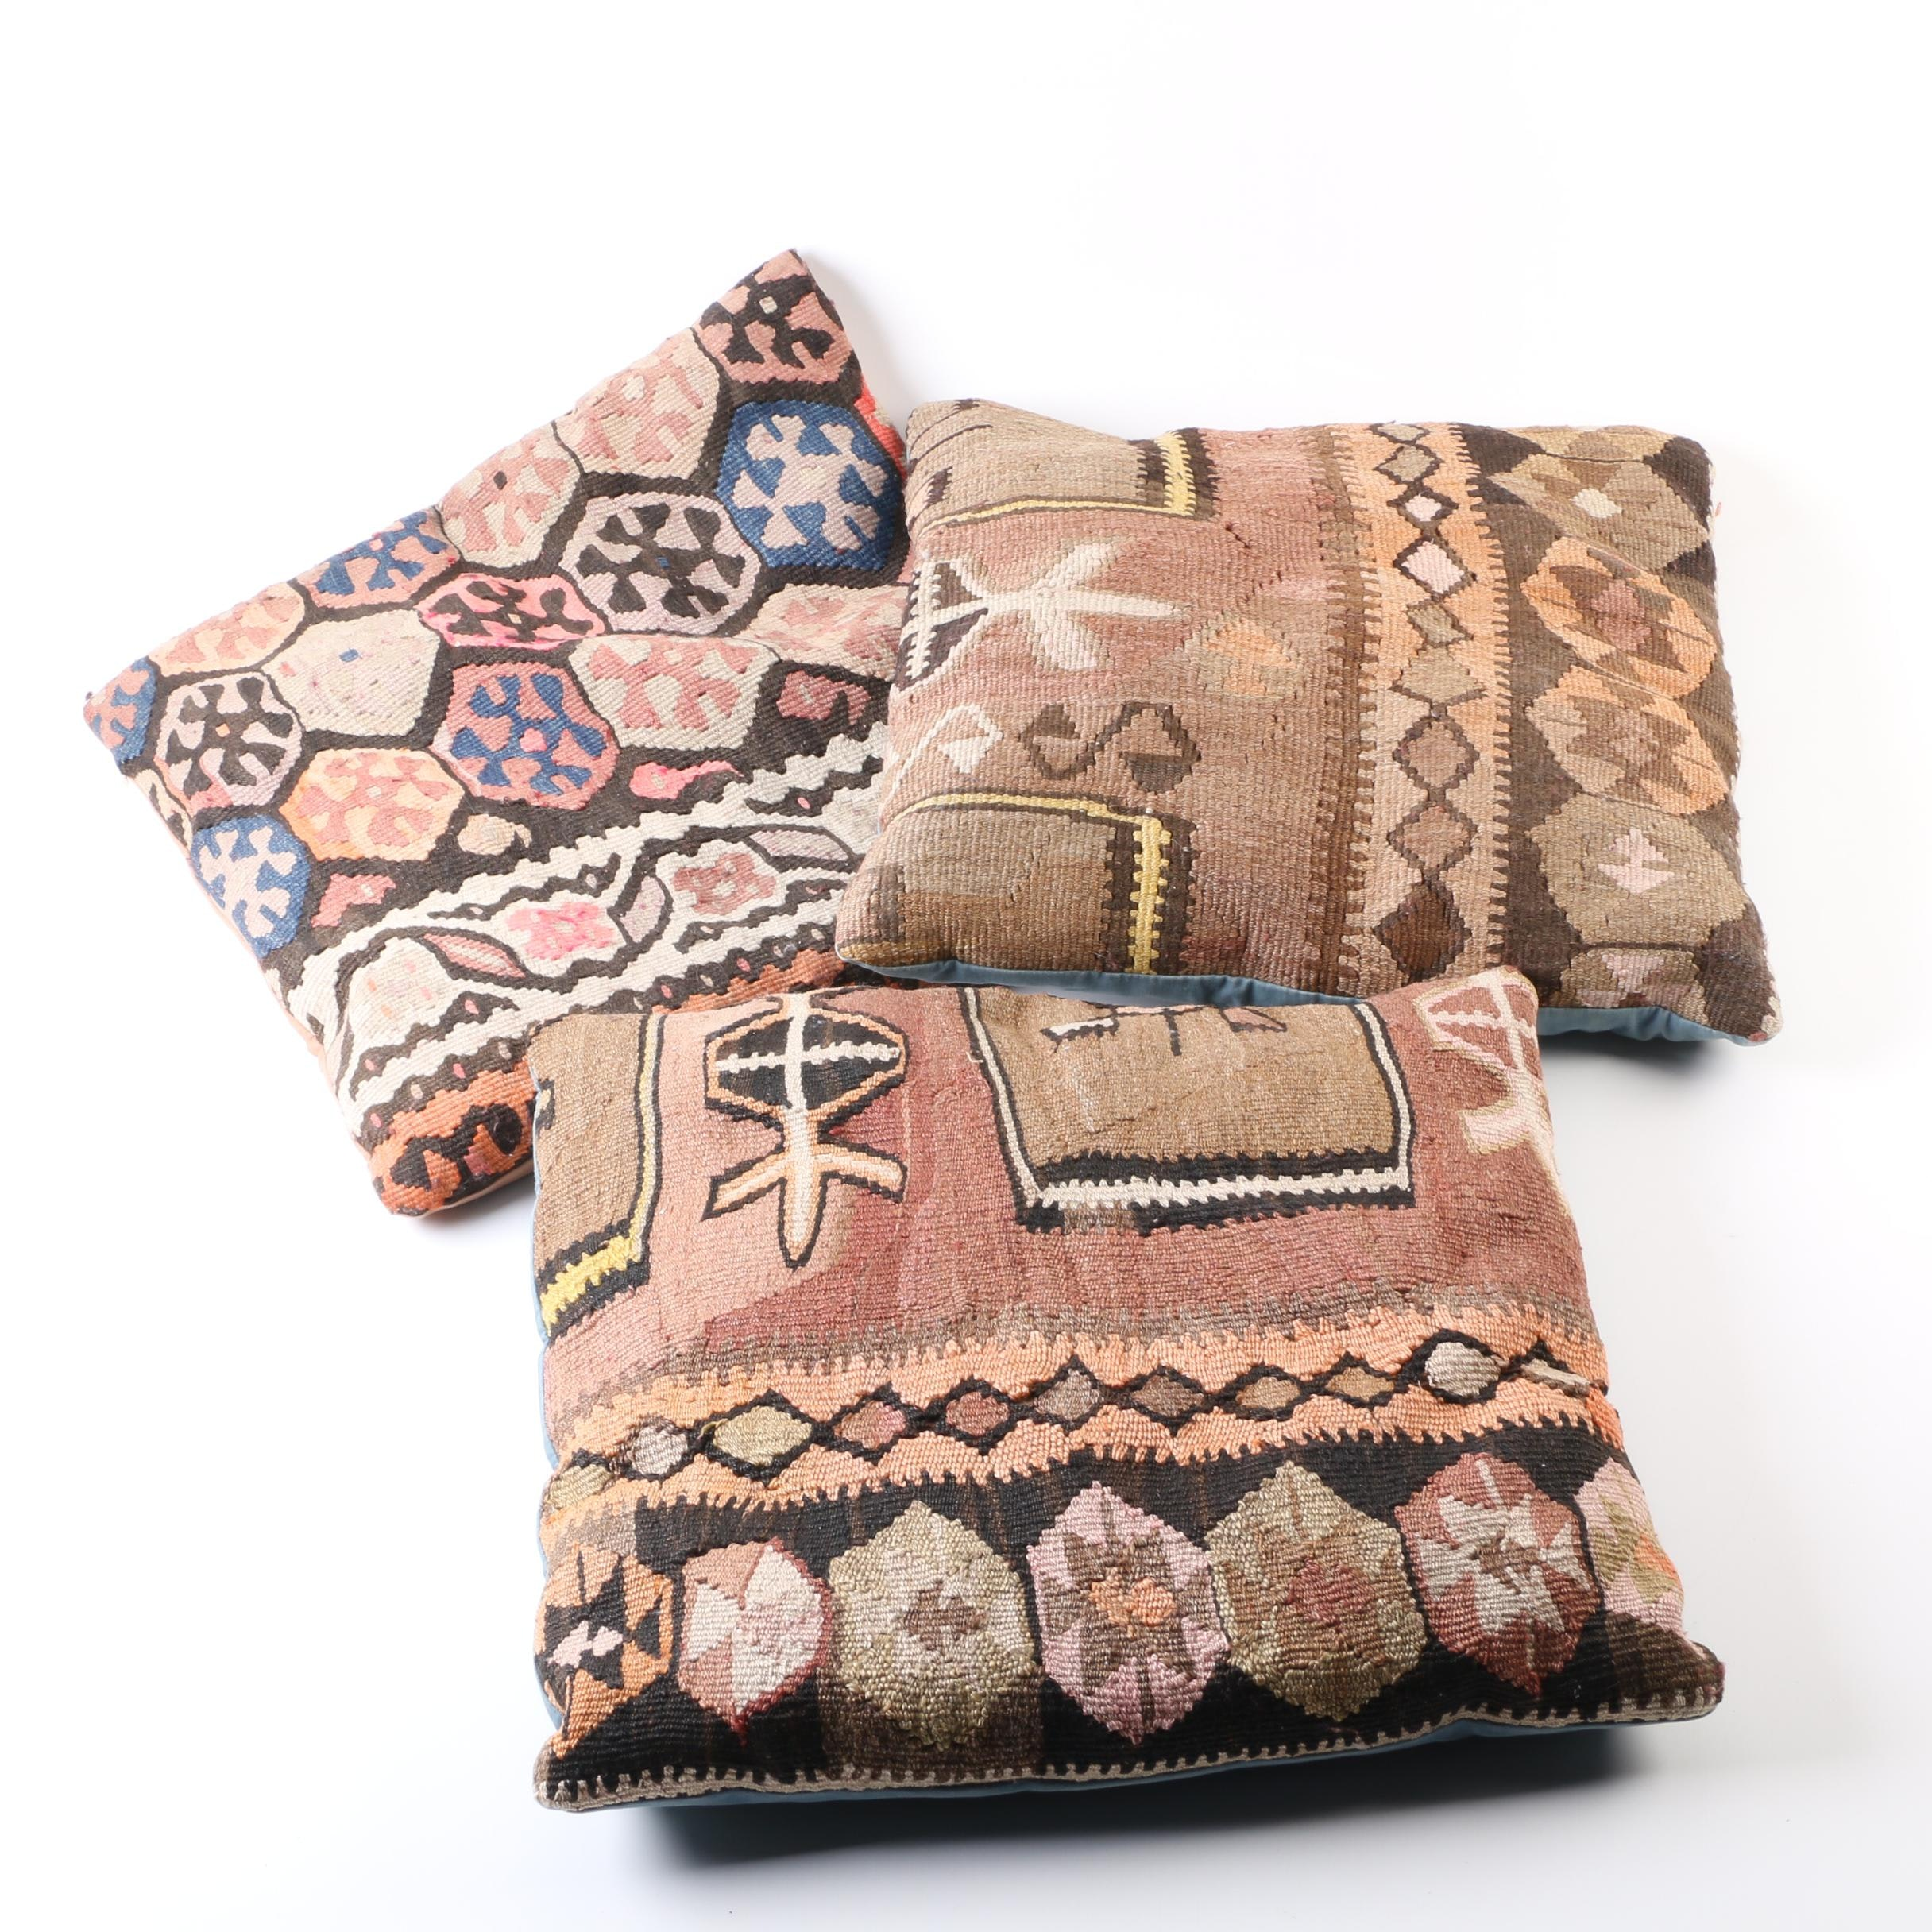 Handwoven Turkish Wool Kilim Remnant Accent Pillows